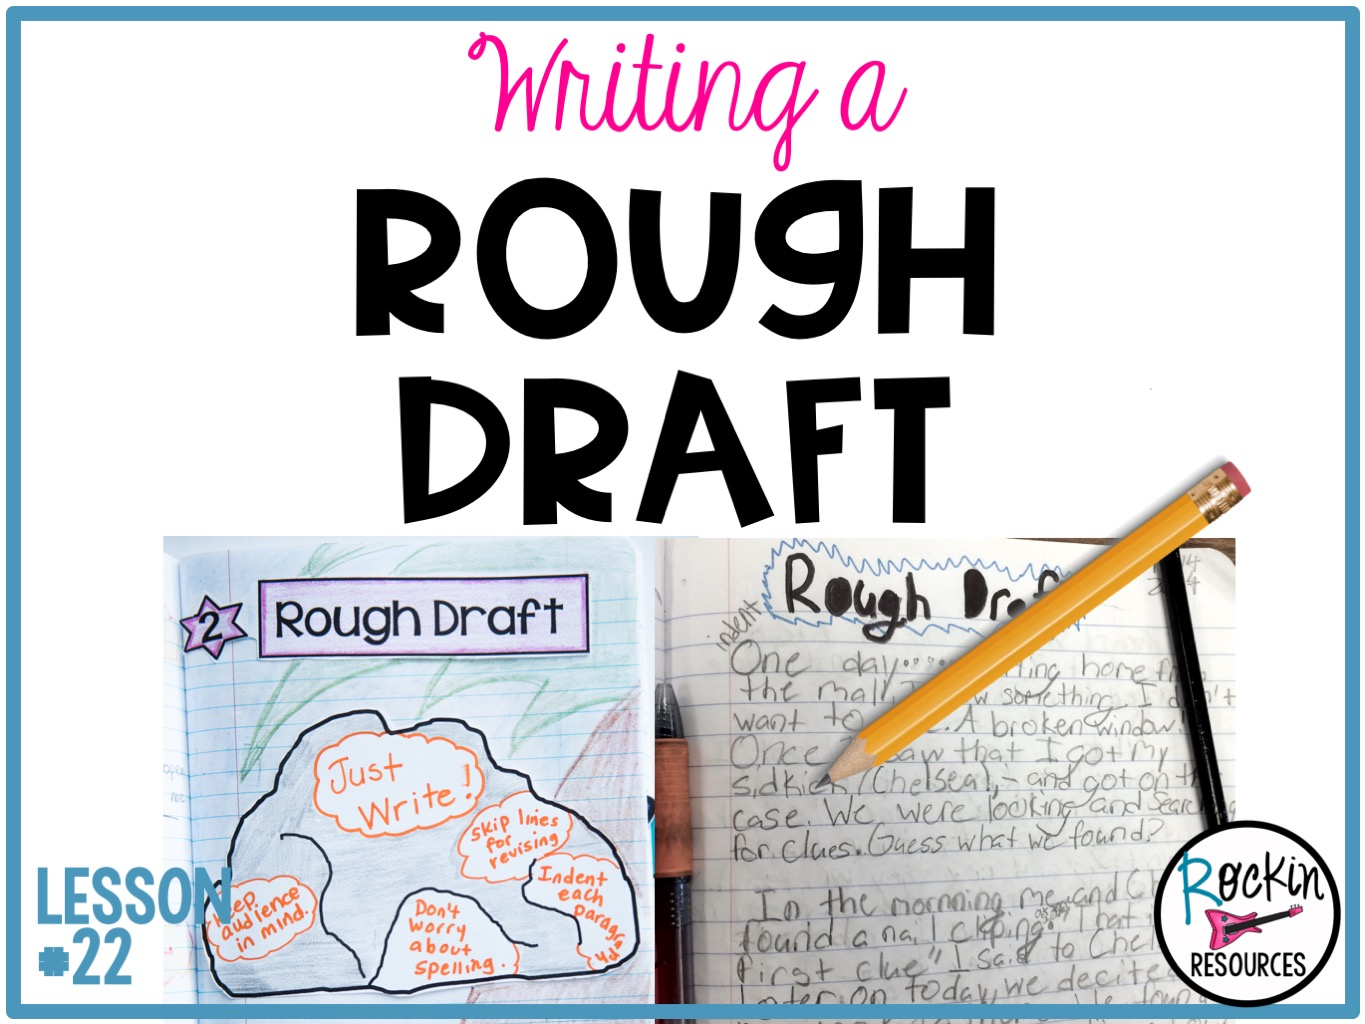 hight resolution of Writing Mini Lesson #22- Writing a Rough Draft for a Narrative Essay    Rockin Resources